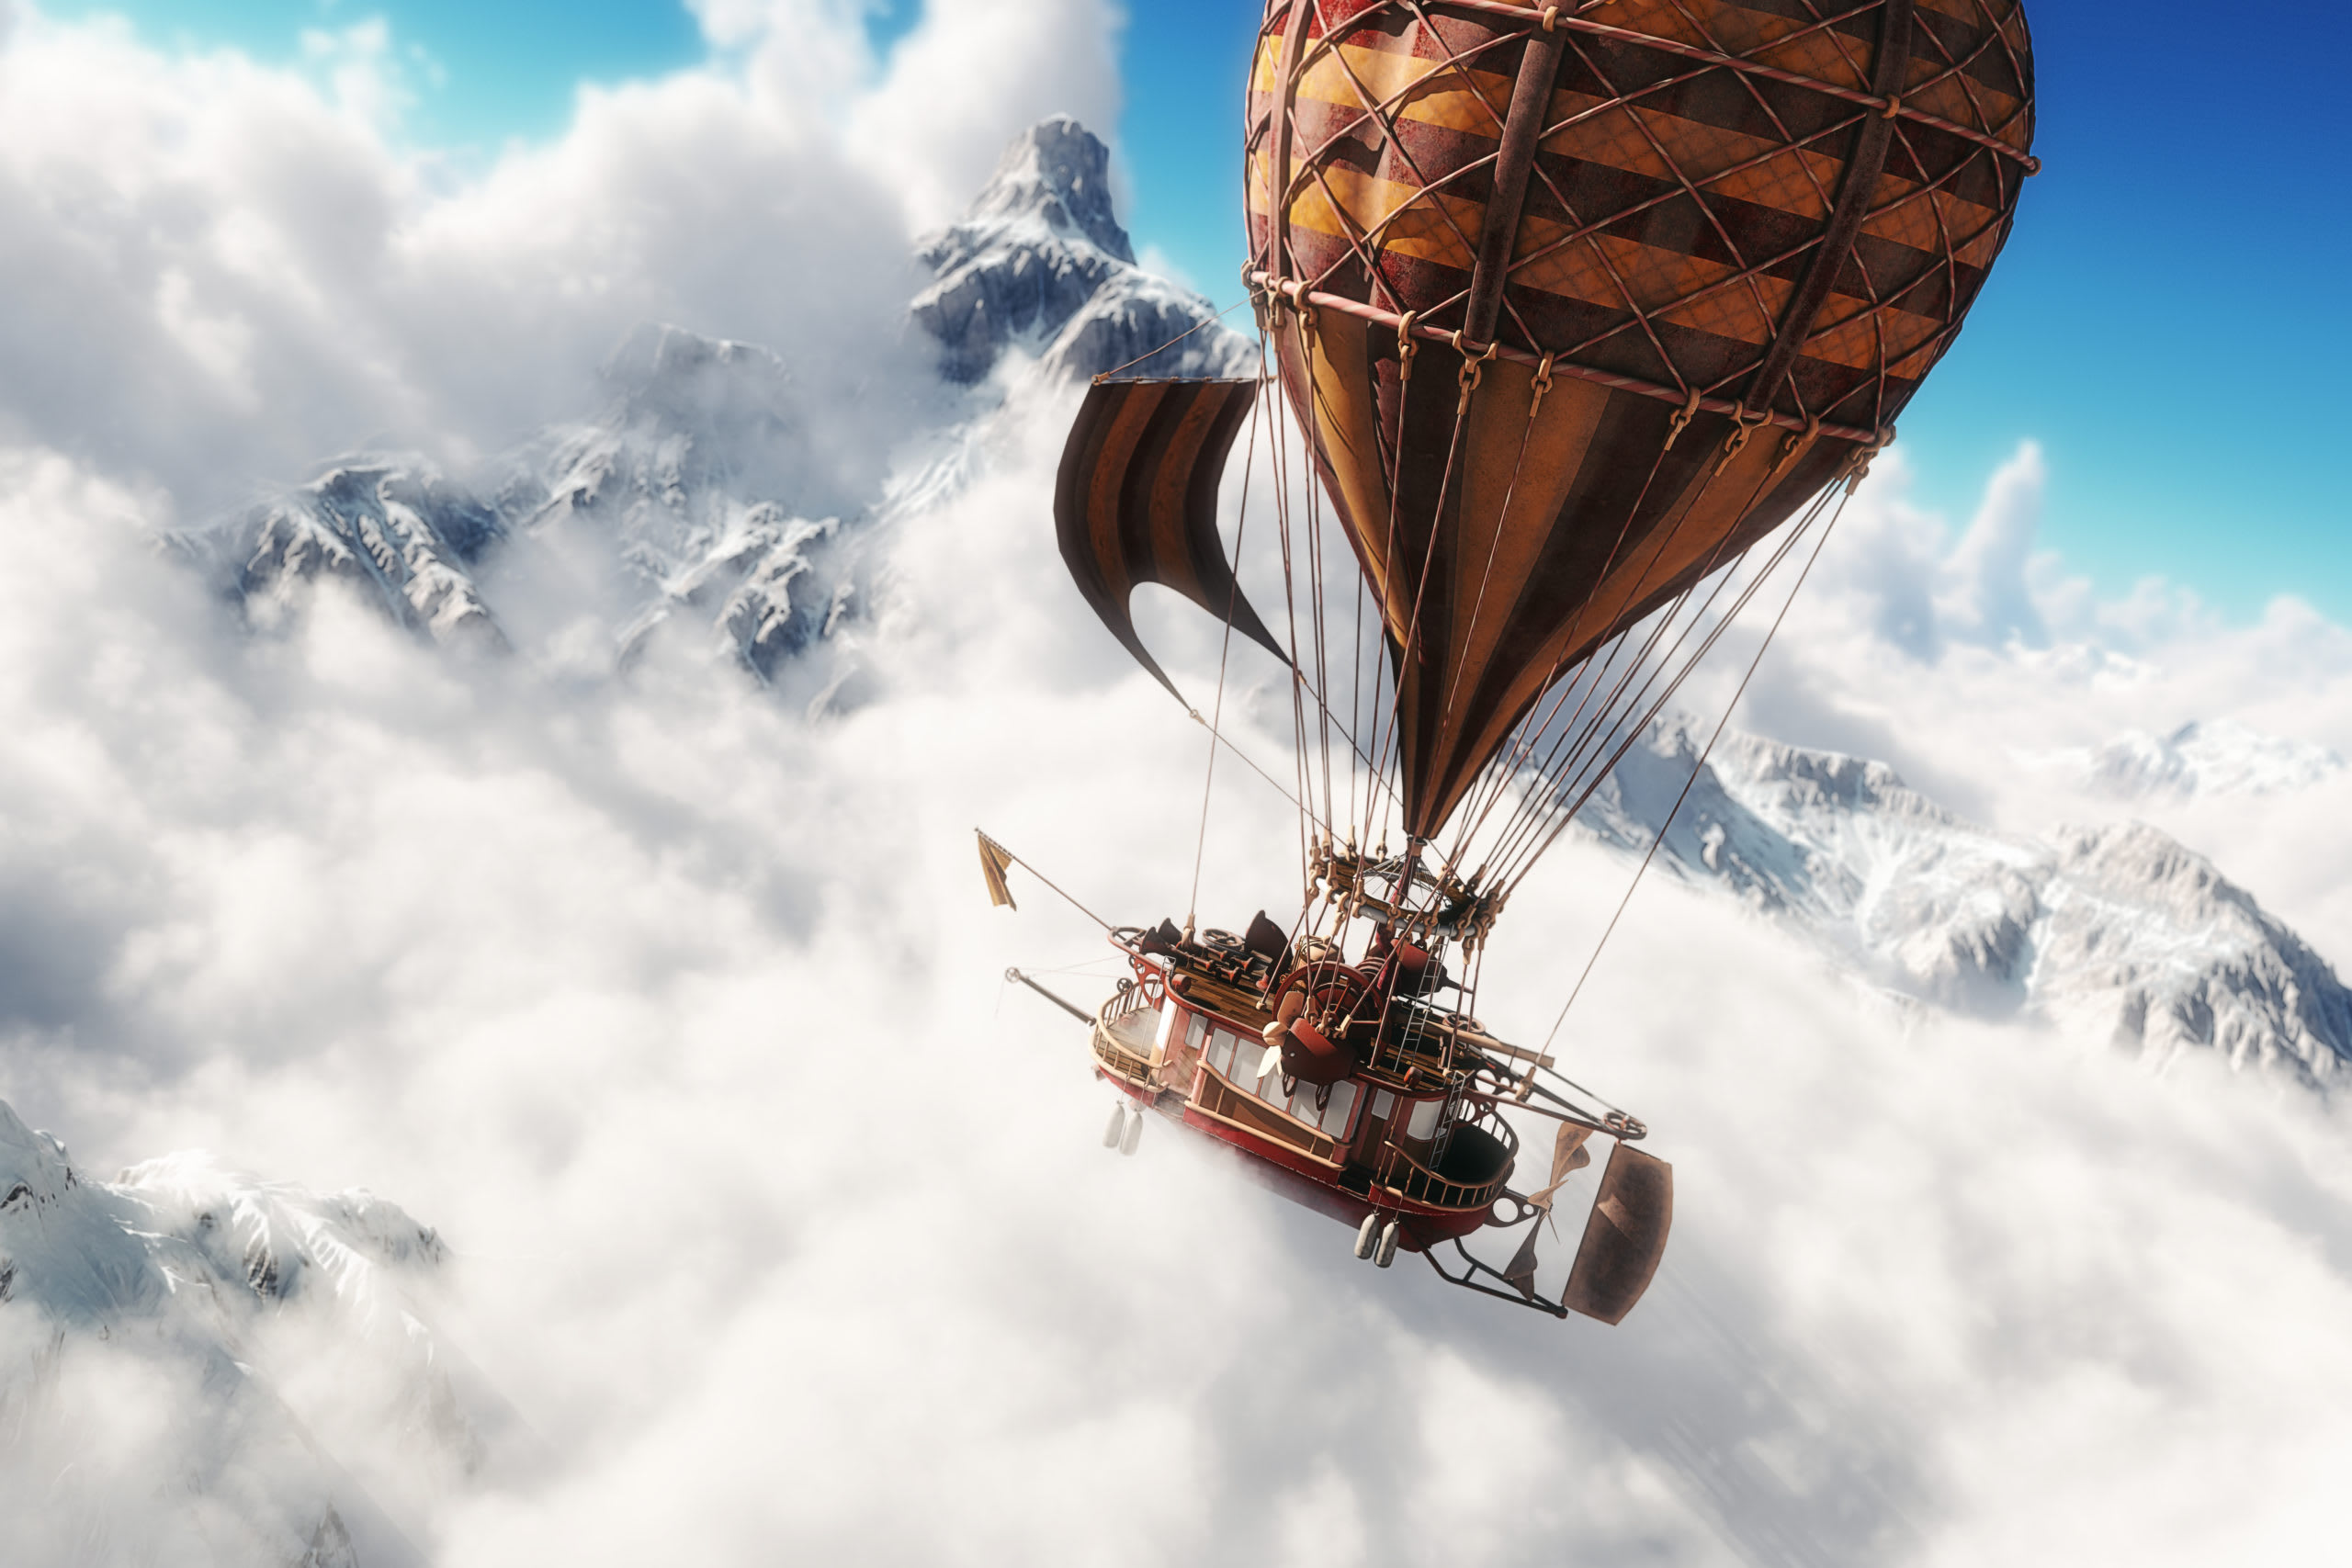 Soaring through the clouds in your dreams